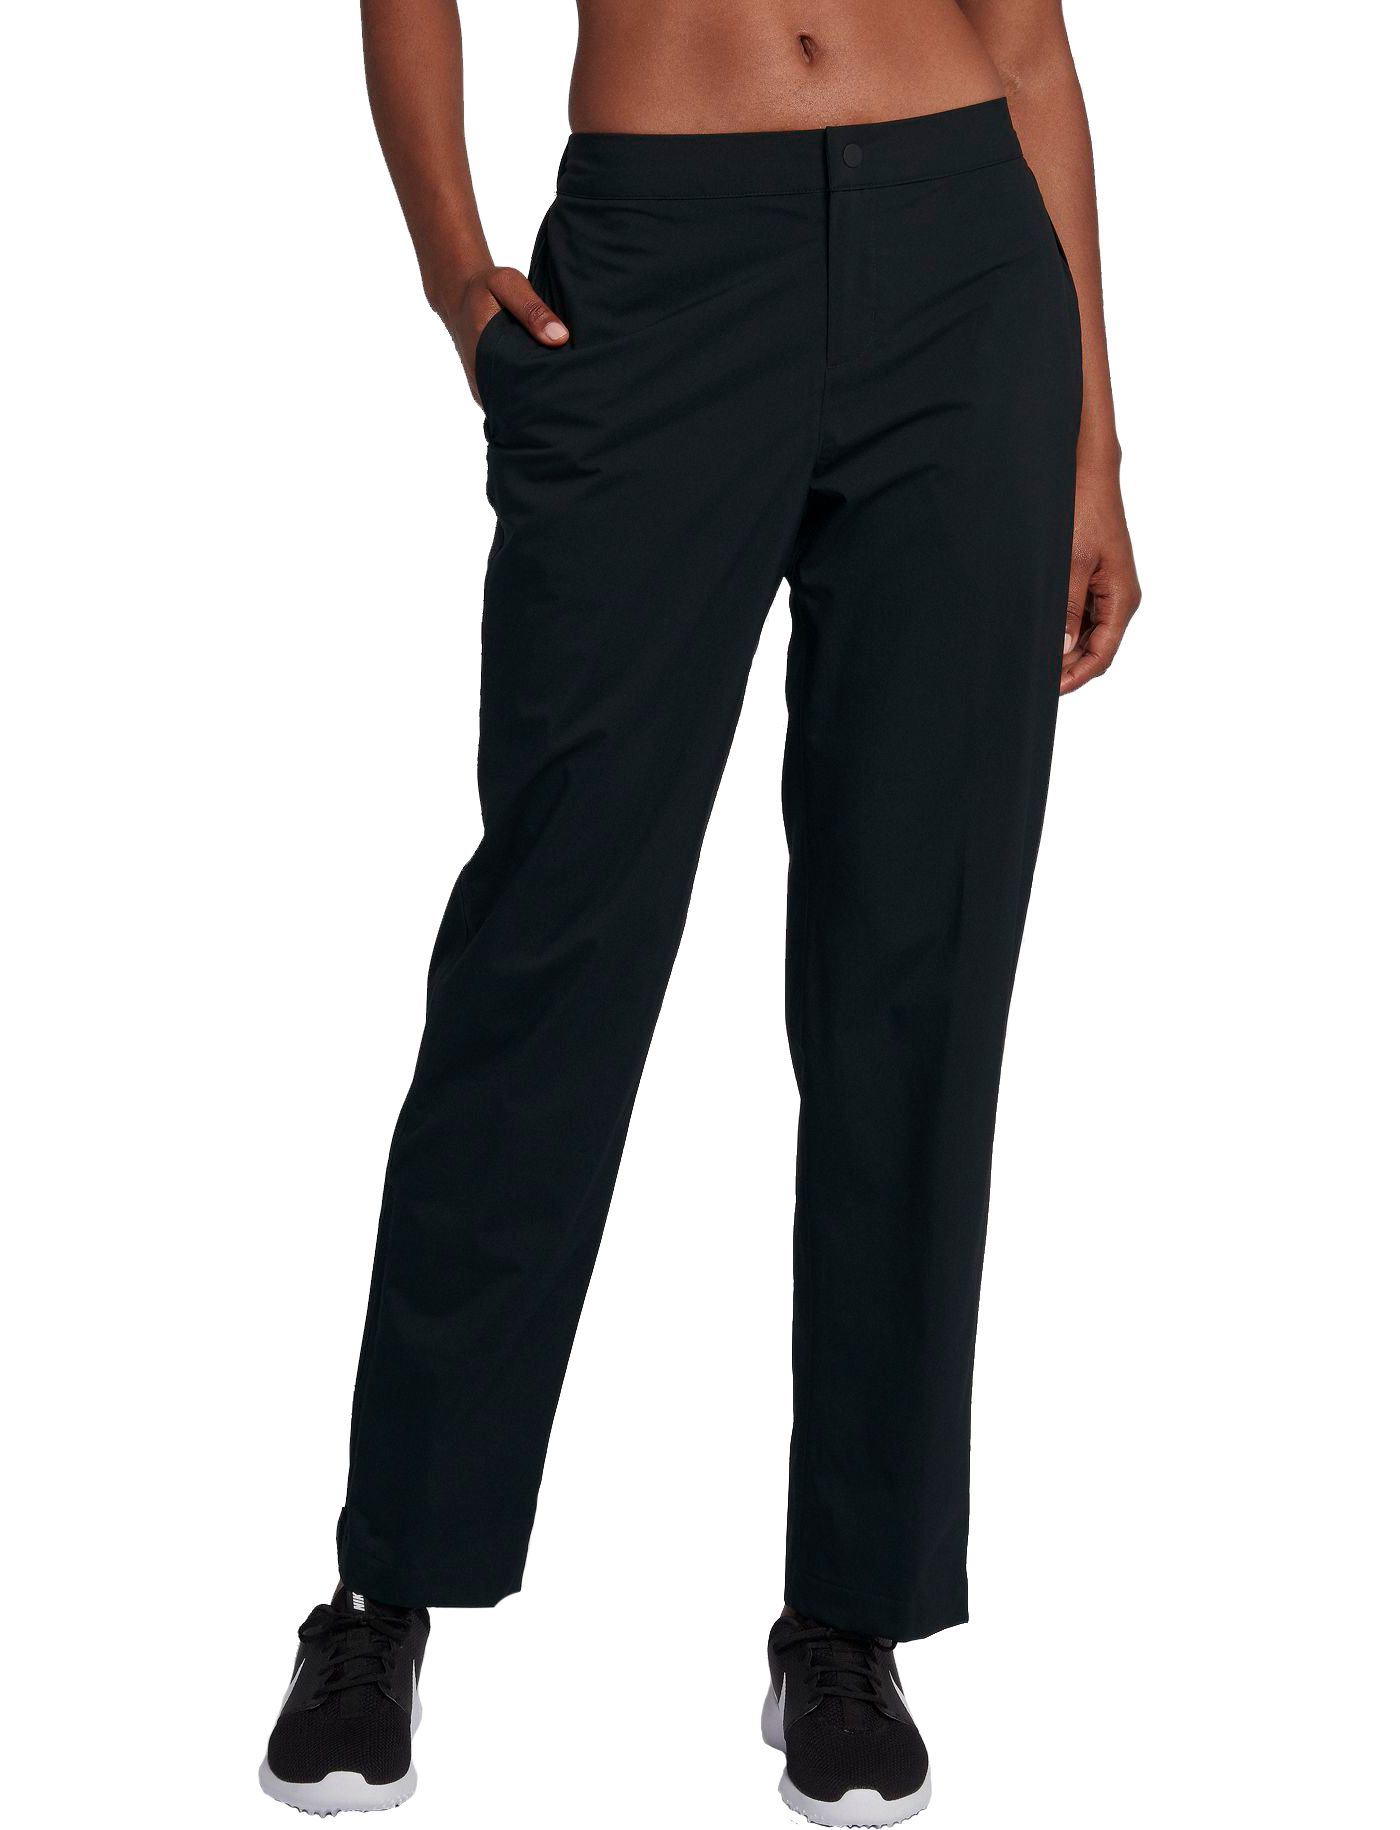 Nike Women's Hypershield Golf Pants